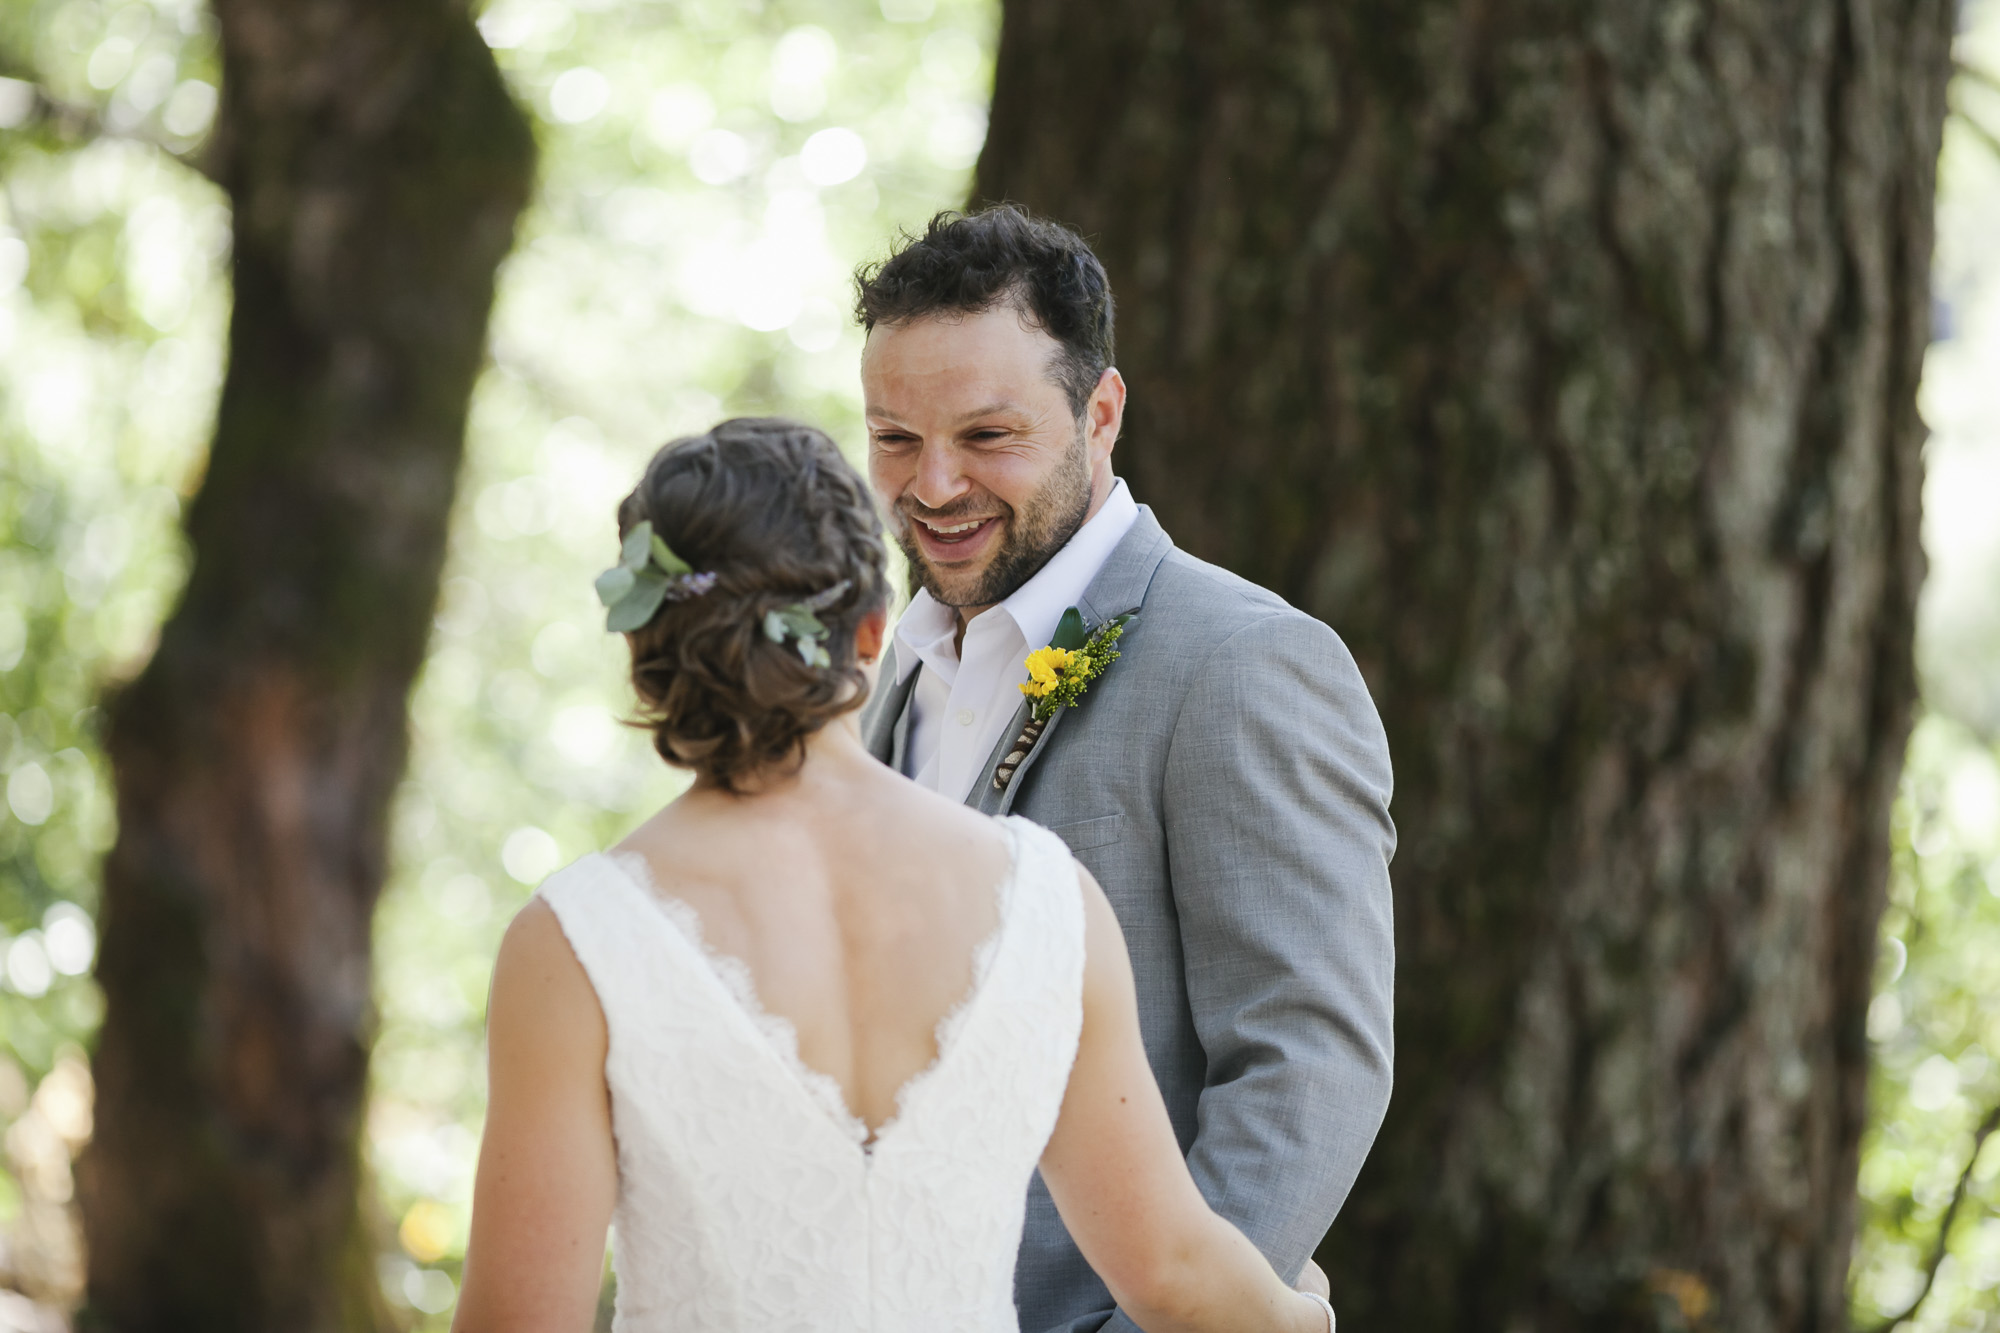 A groom sees his bride for the first time and is excited and happy